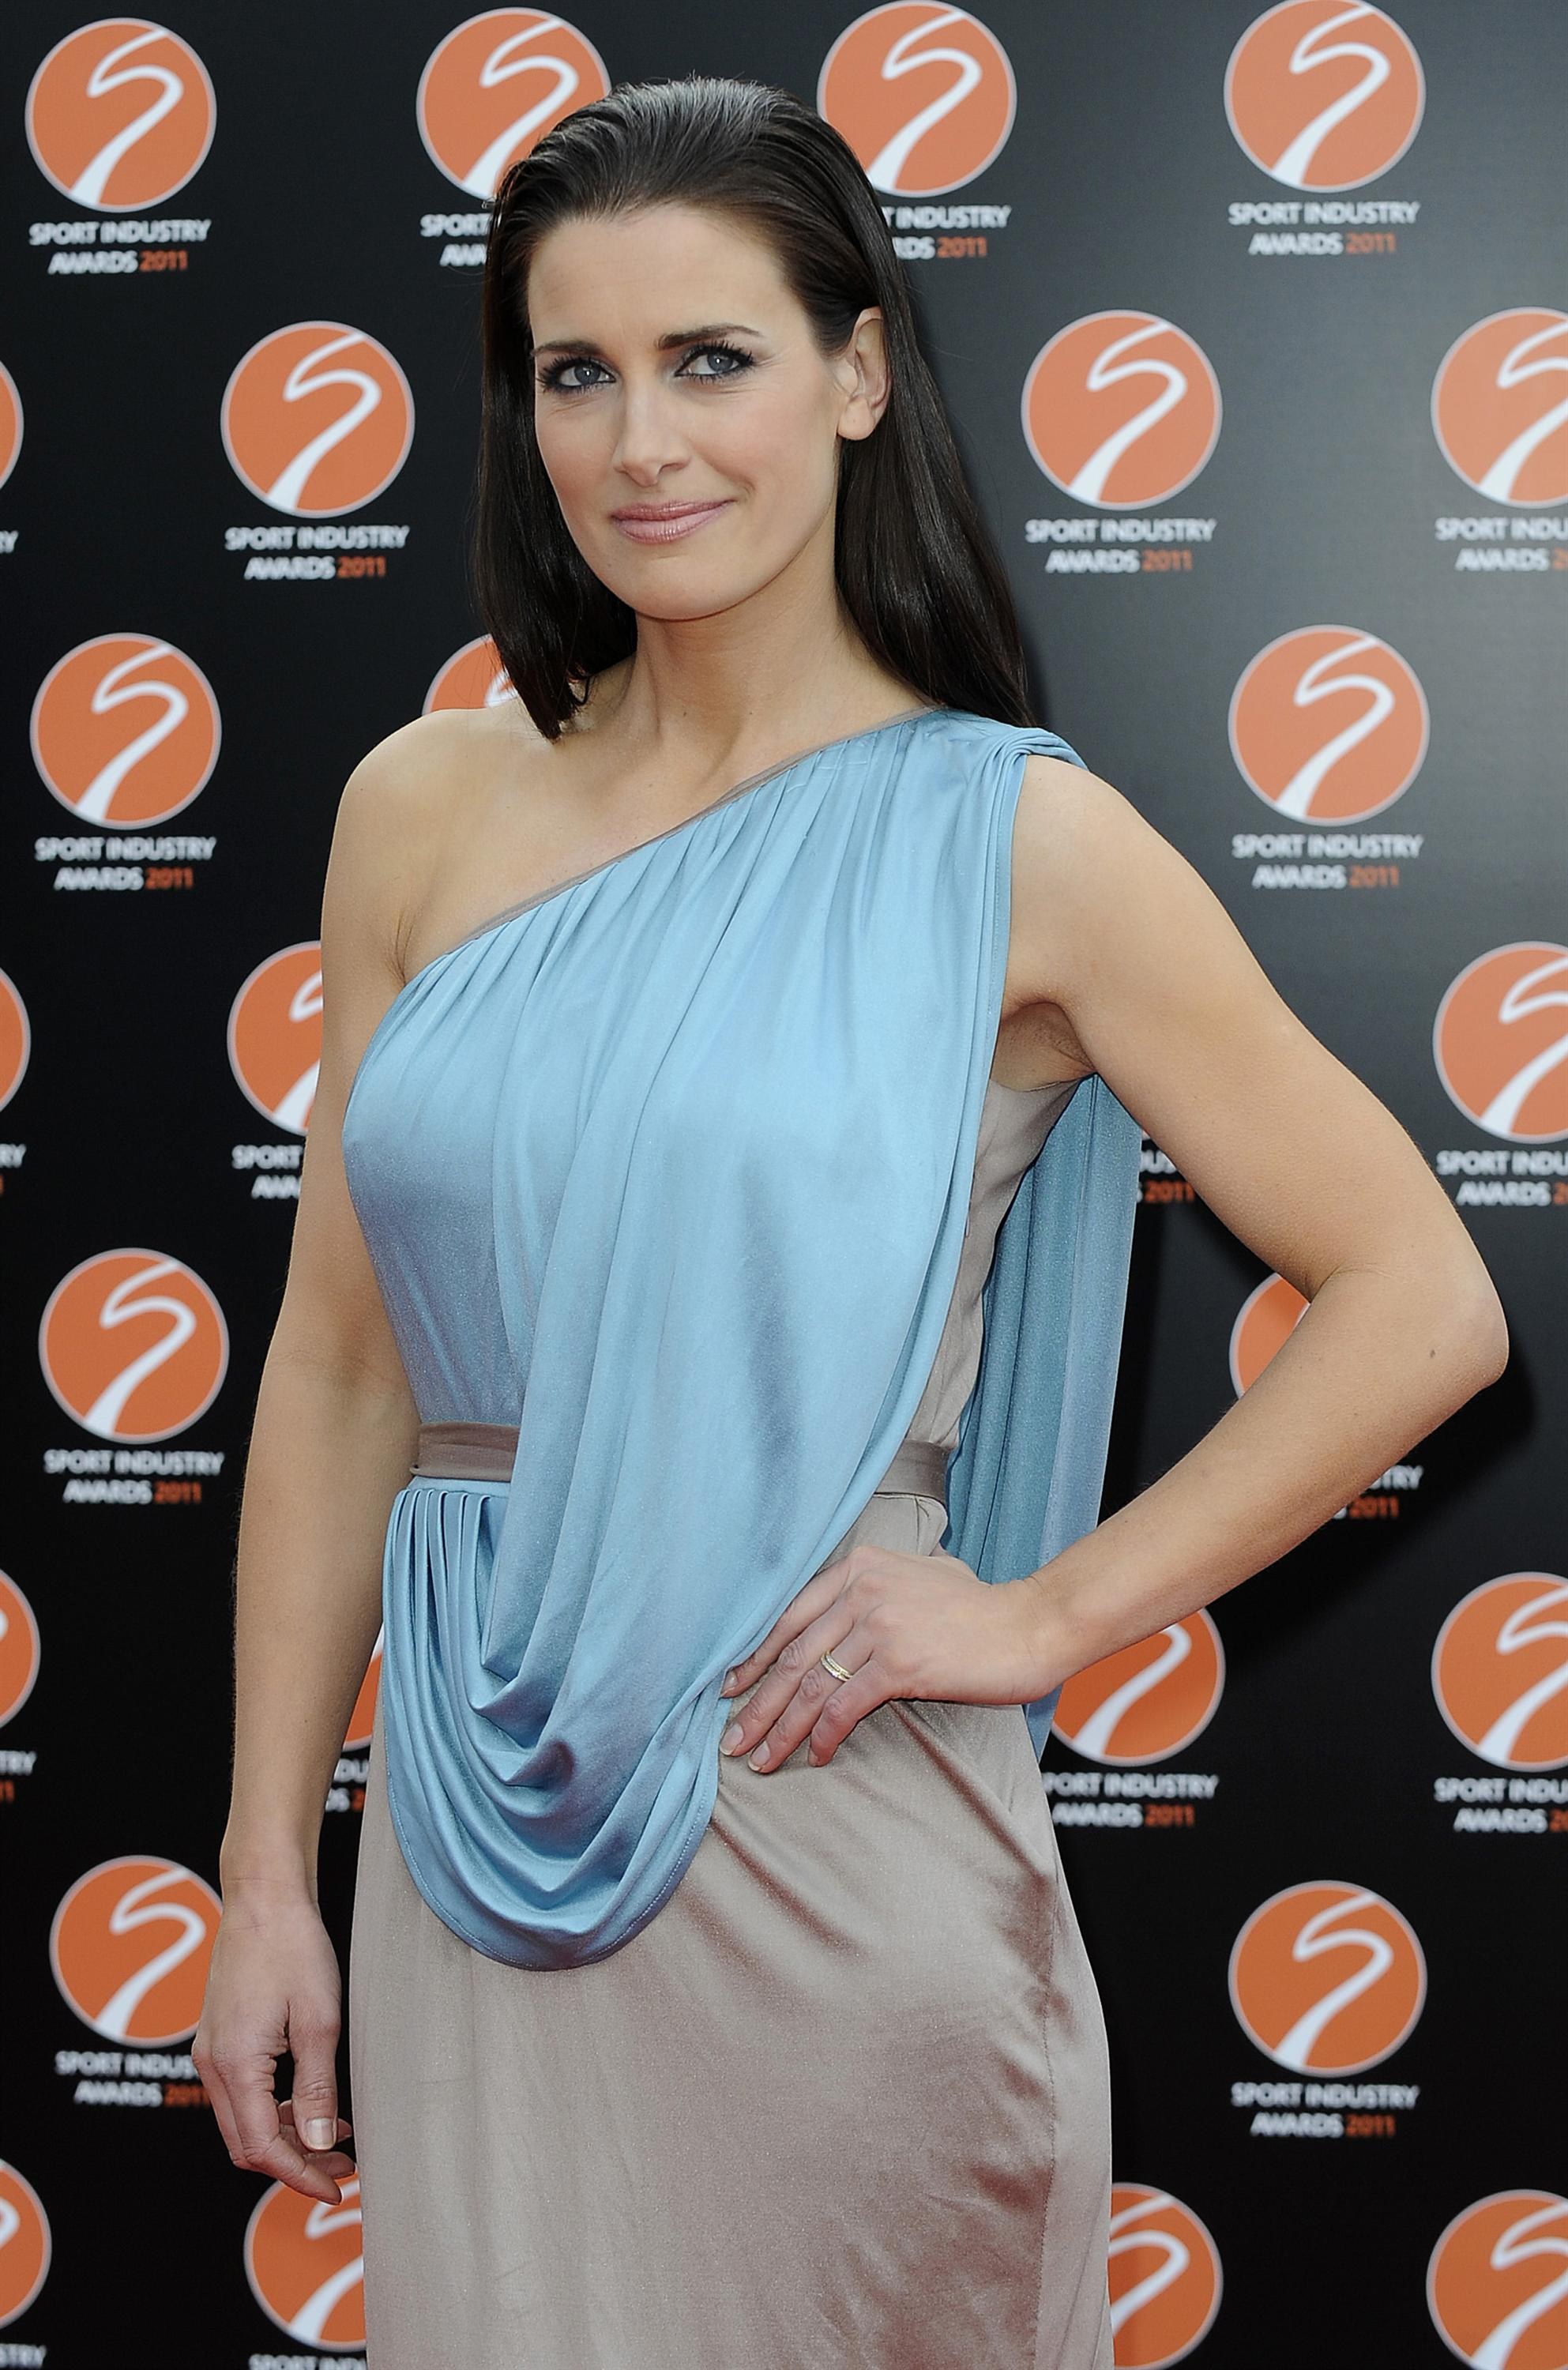 Kirsty Gallacher at Sport Industry Awards in London